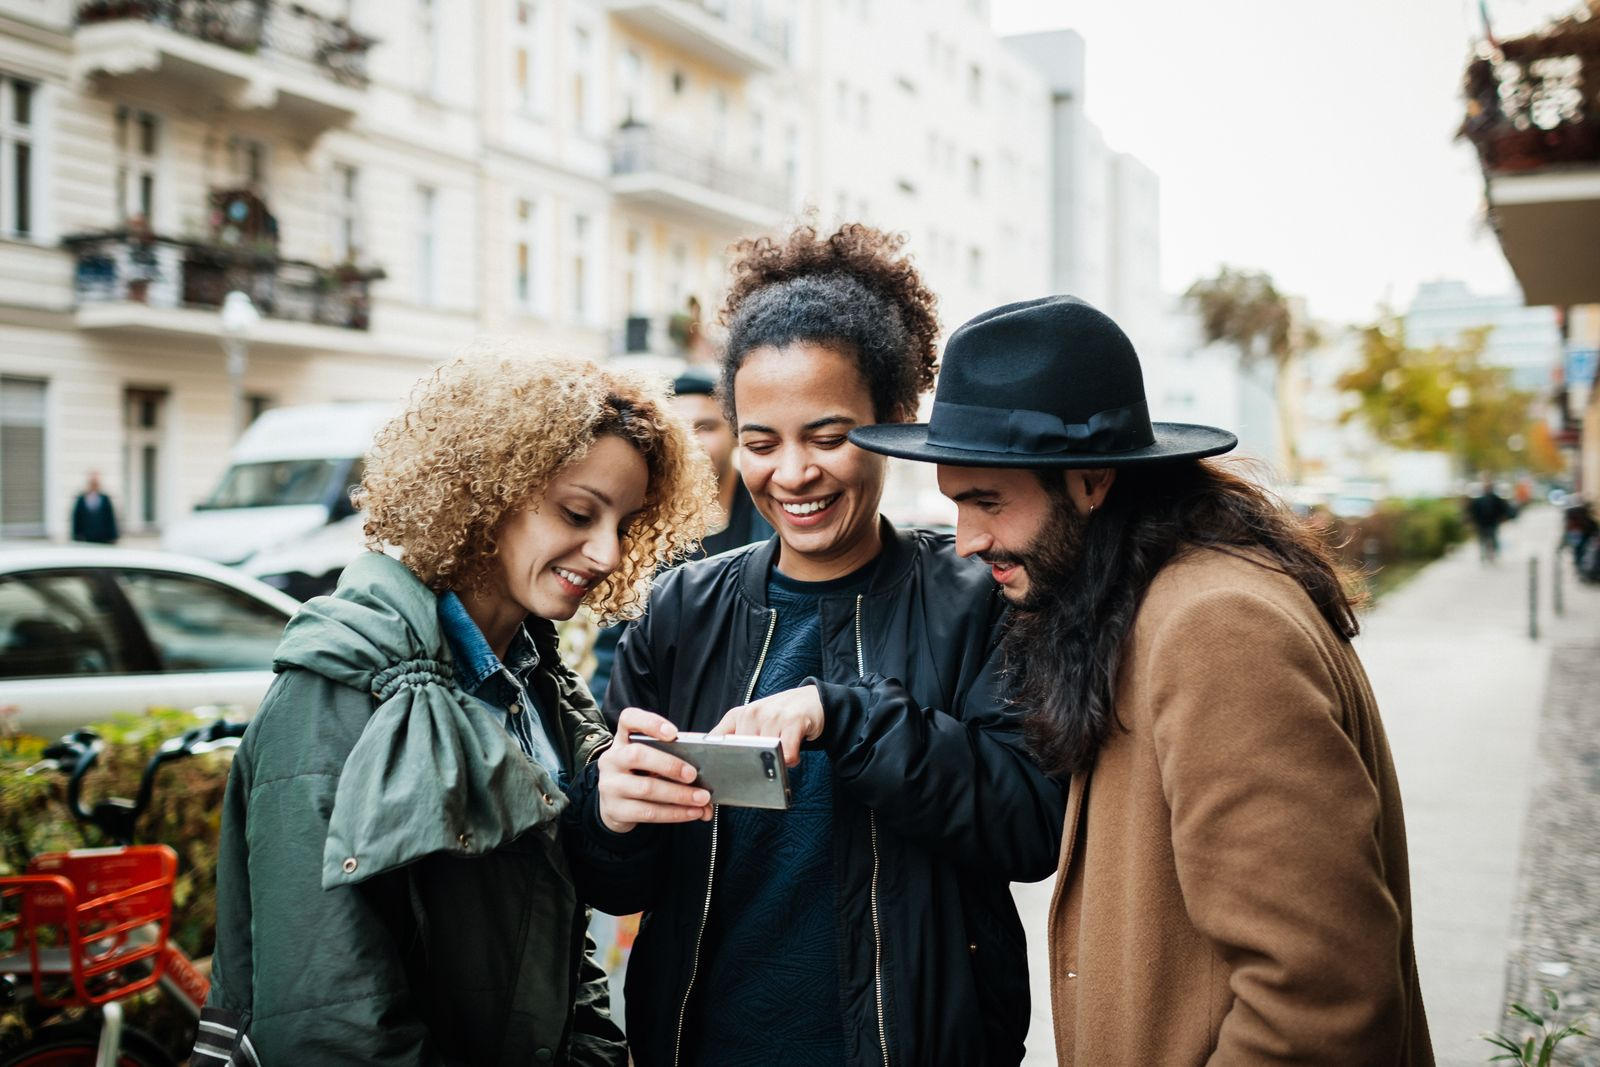 Group Of Friends Looking At Smartphone In Street